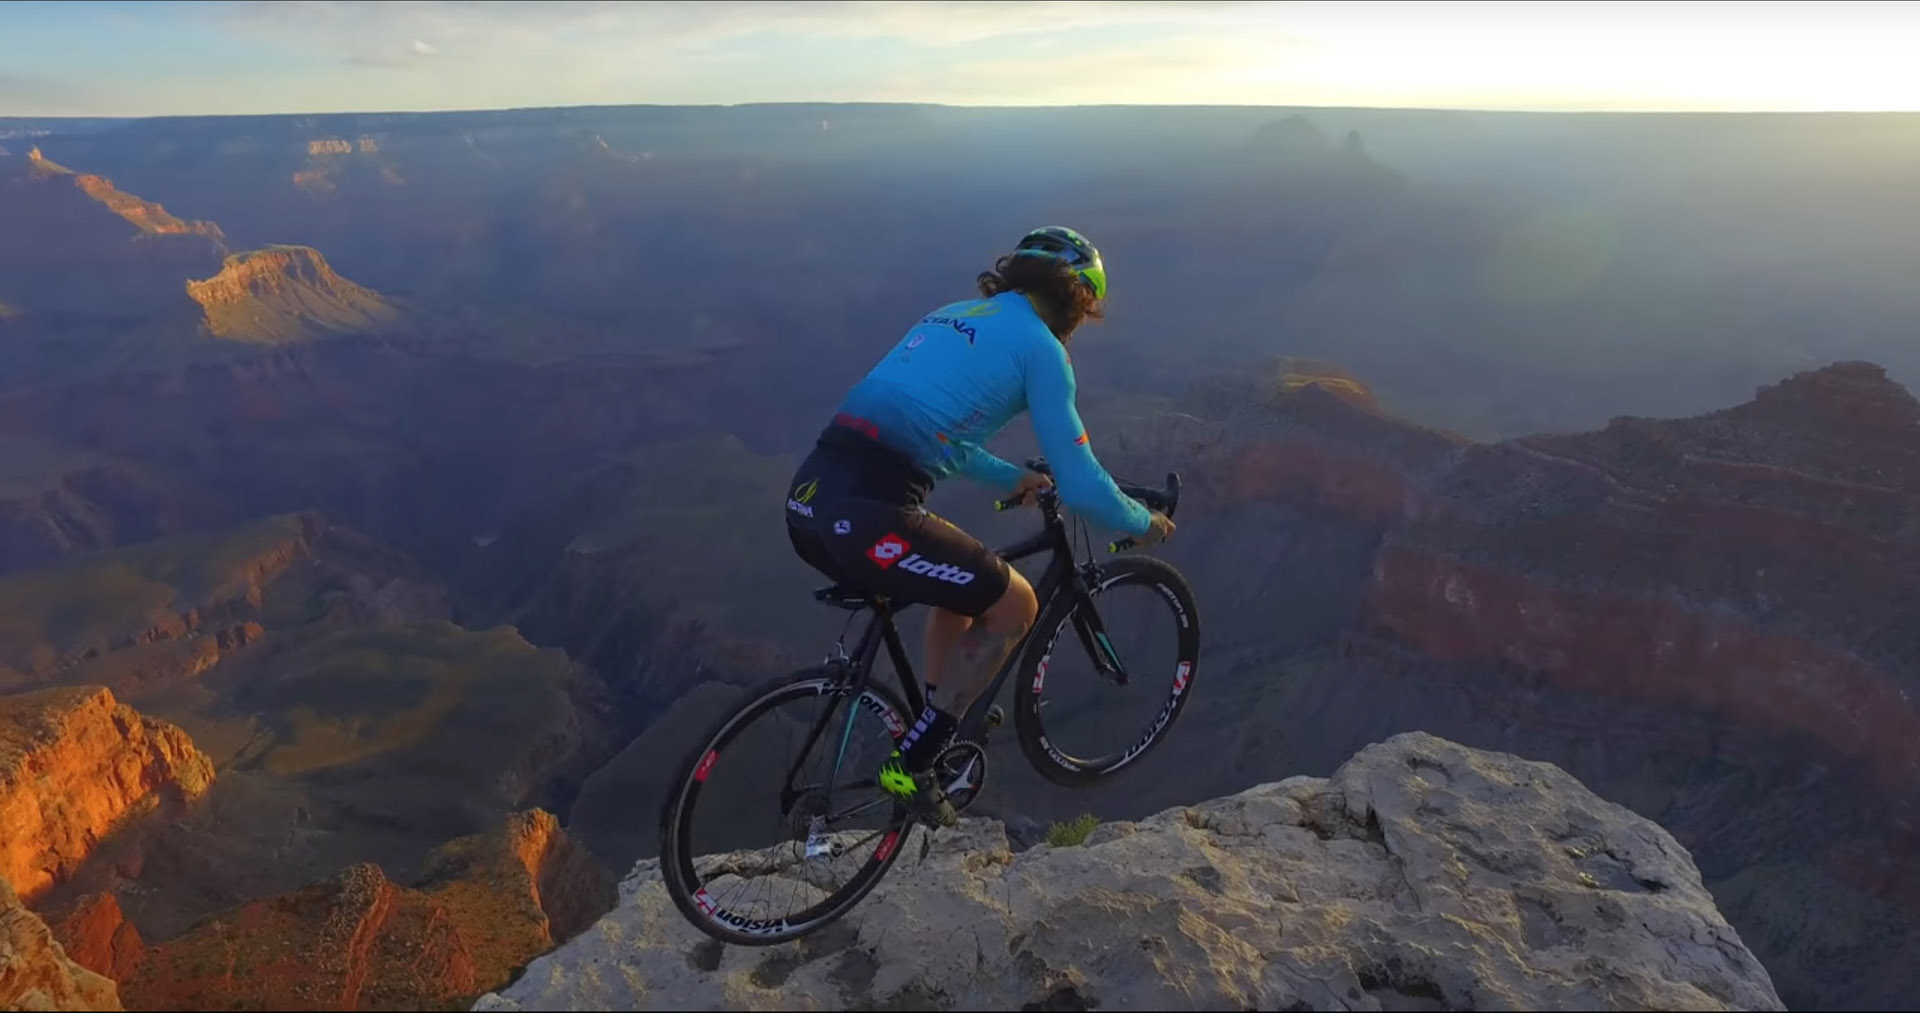 Vittorio Brumotti - Grand Canyon trials riding